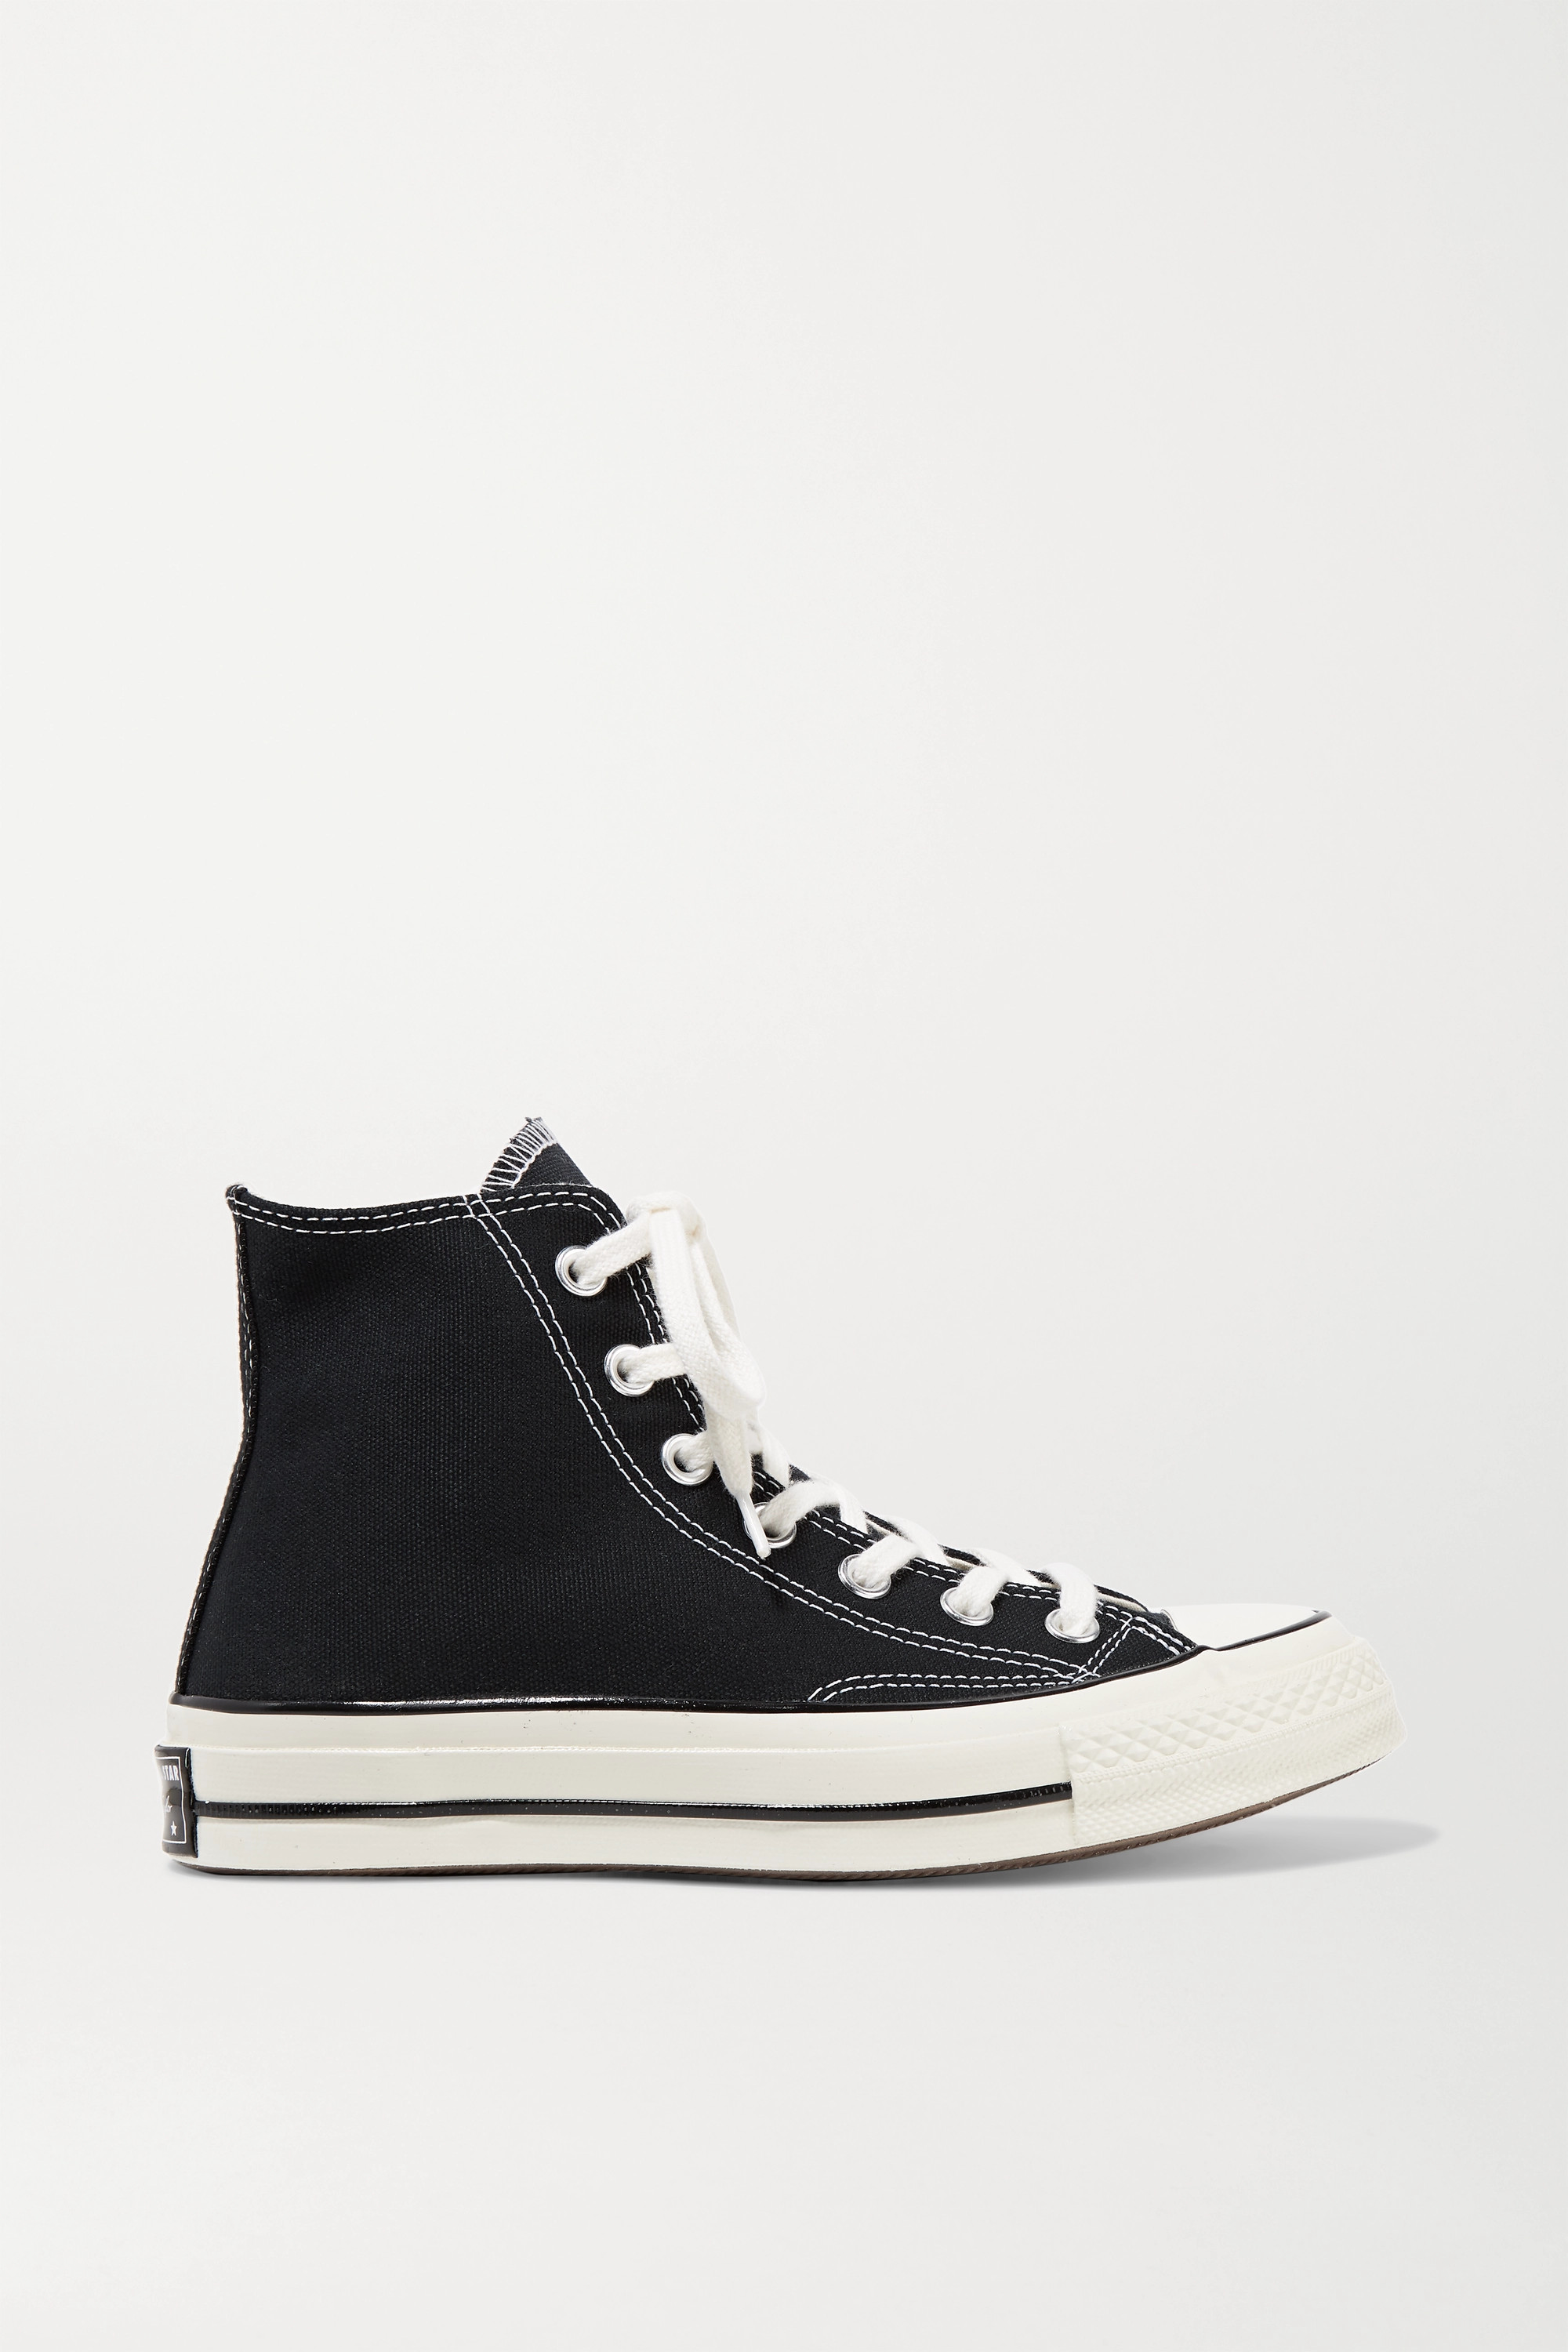 Chuck Taylor All Star 70 canvas high-top sneakers